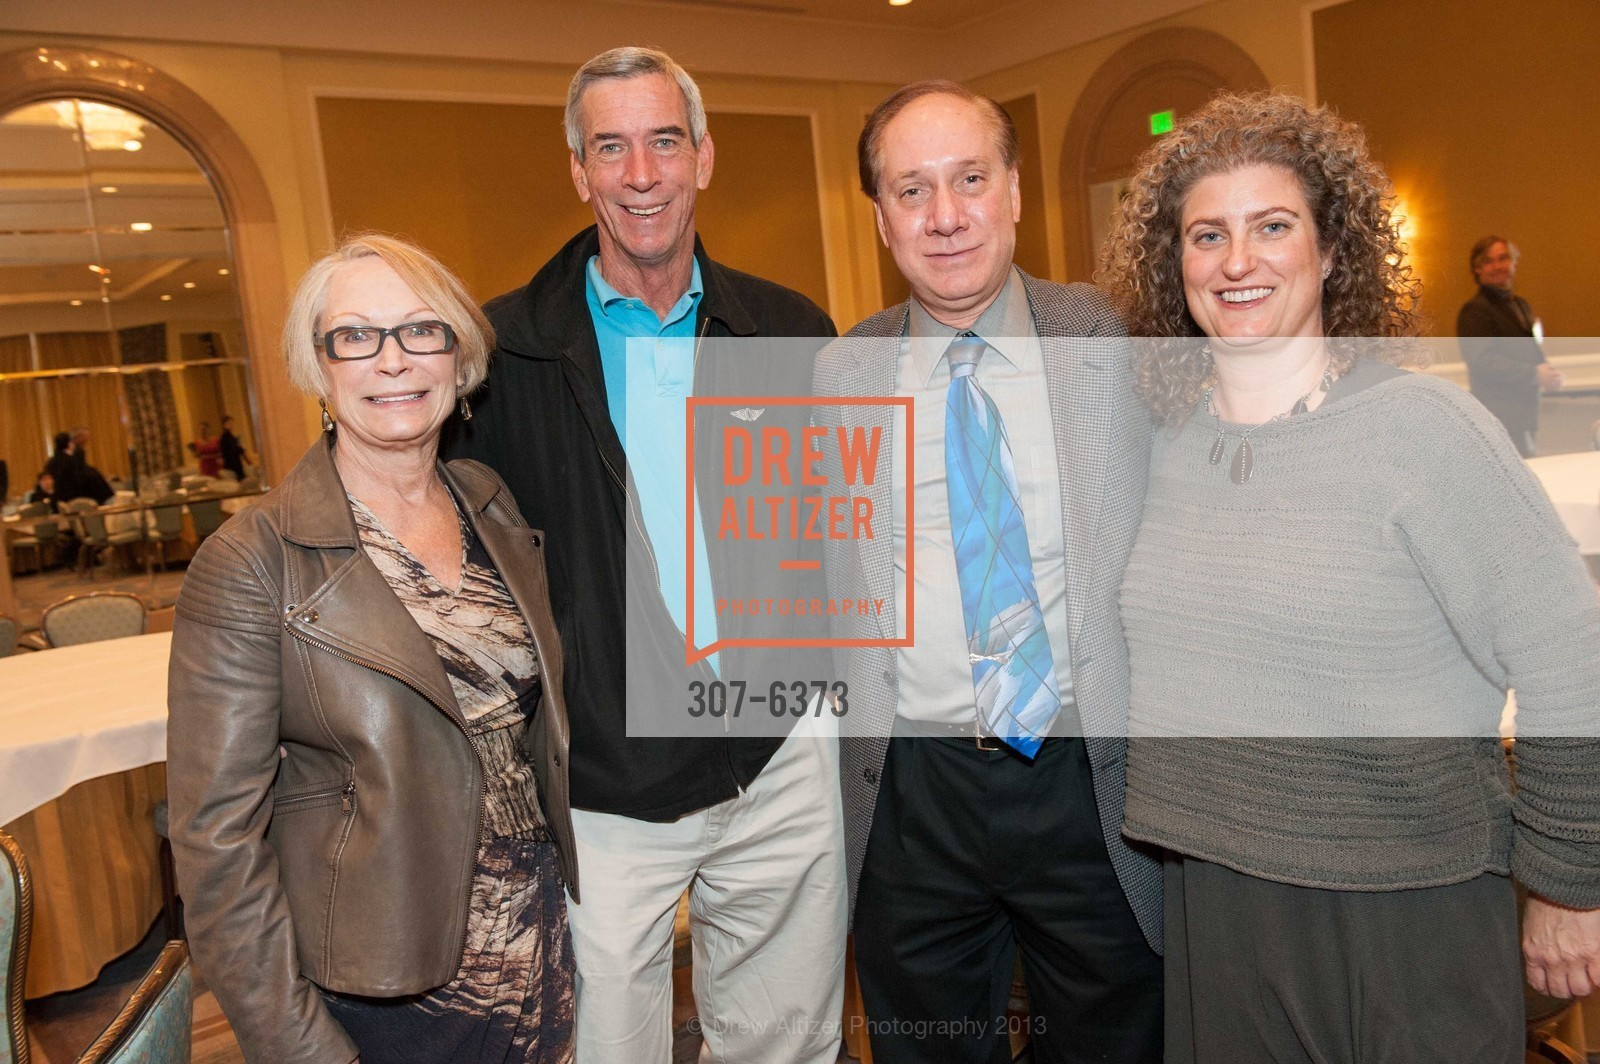 Millicent Buxton Smith, Dan McCurthy, Paul Christopher, Madeleine Lanske, Photo #307-6373